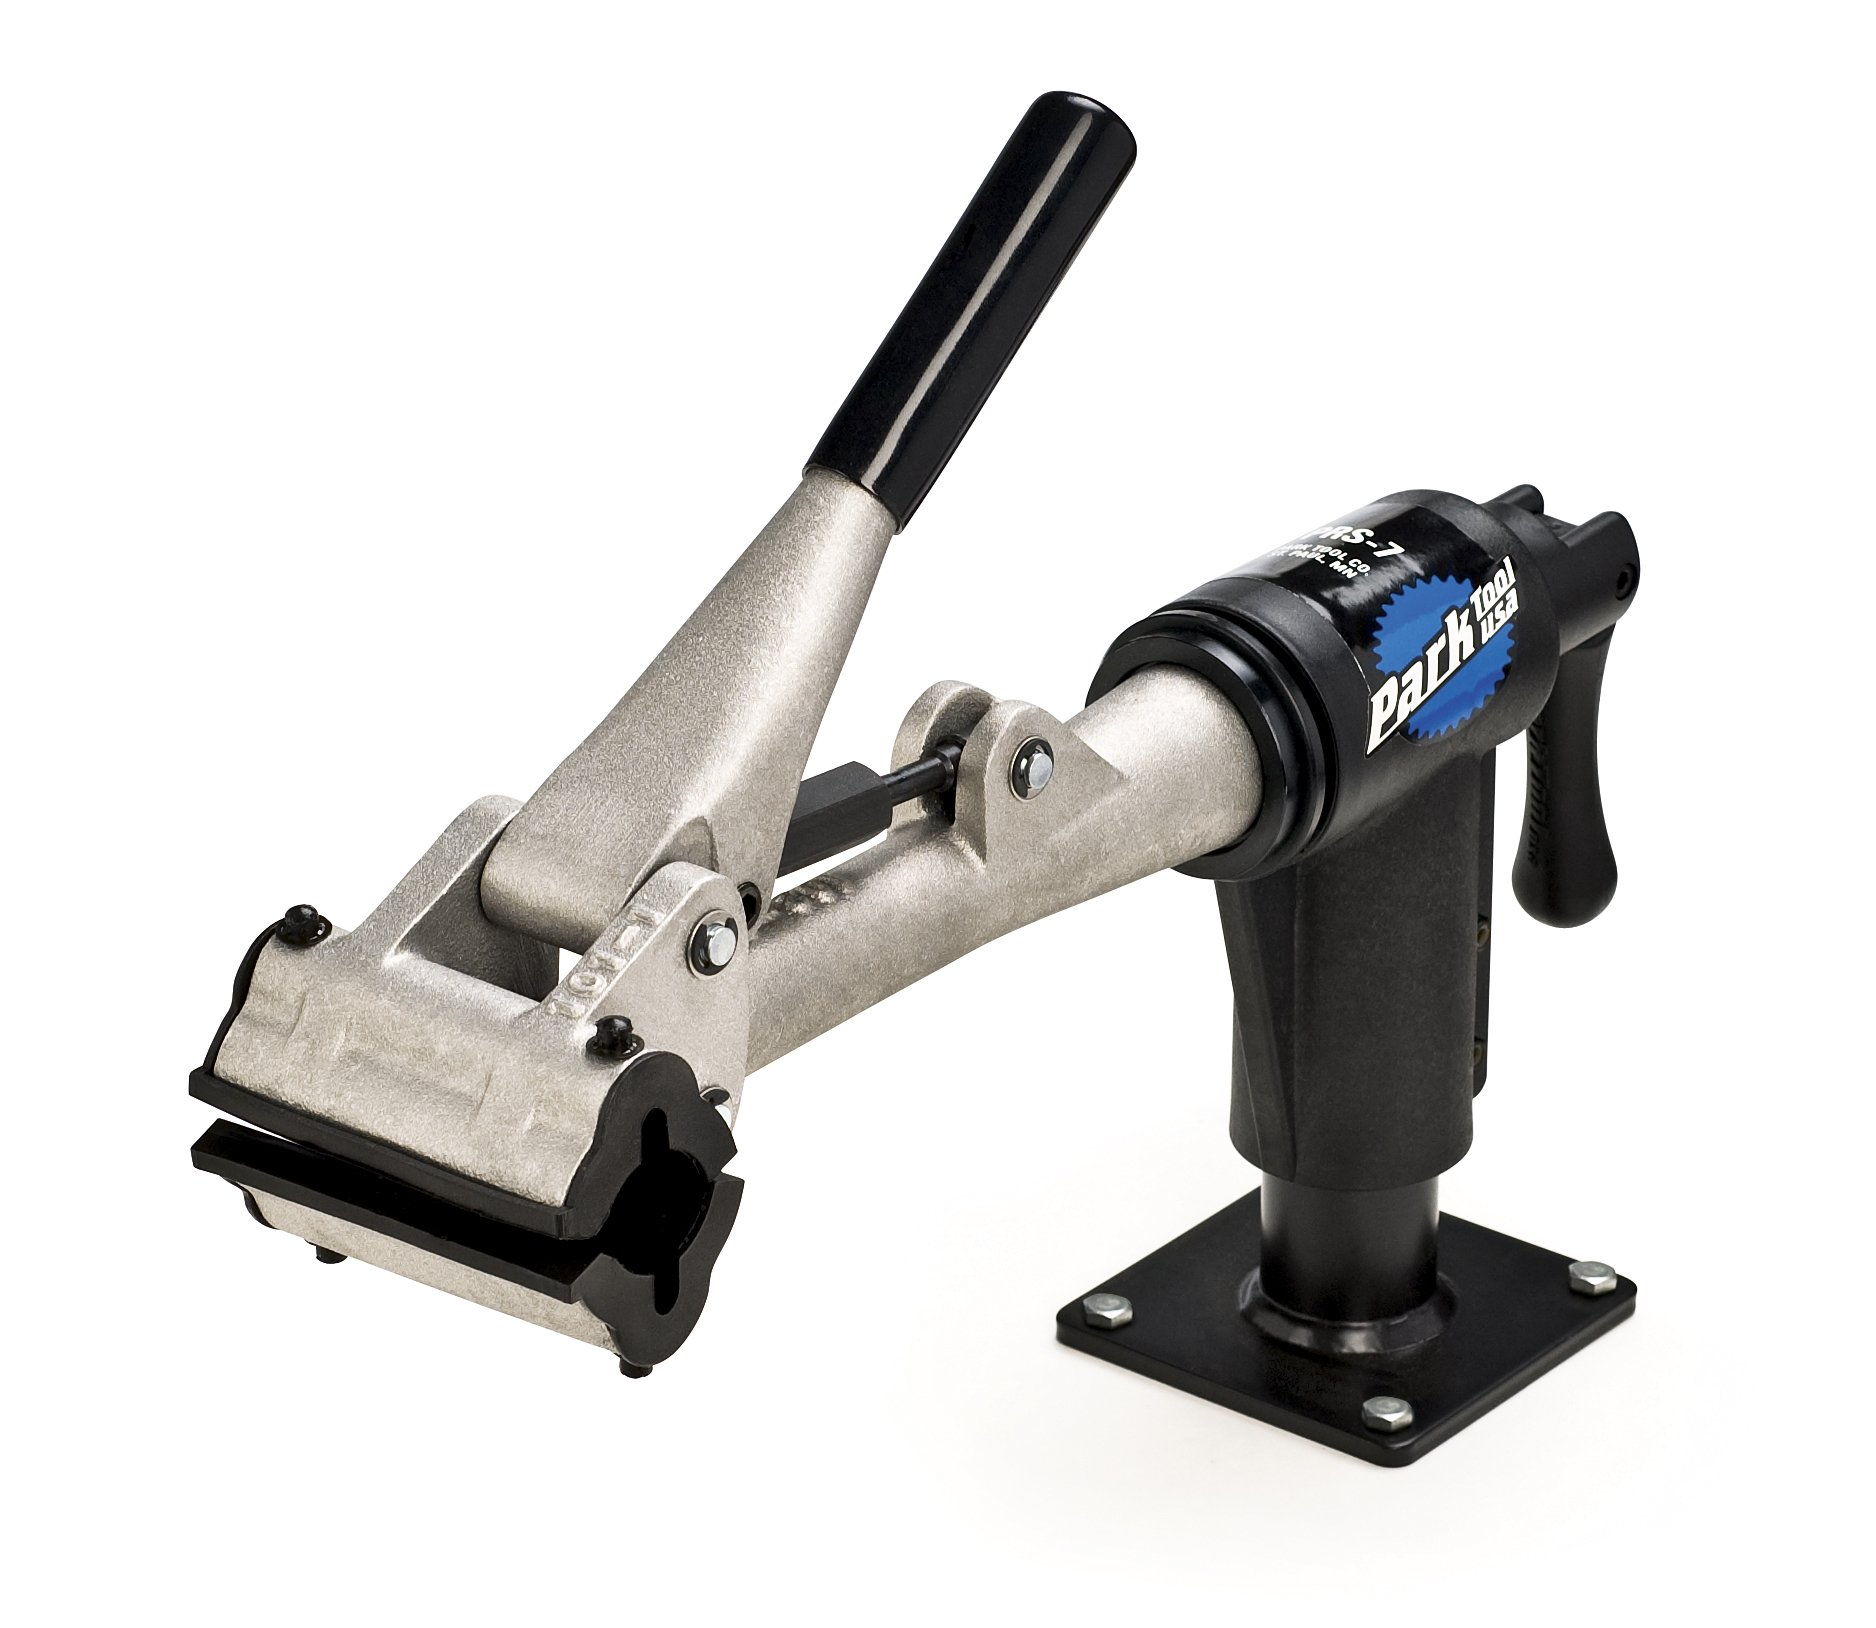 Park Tool Bench Mount Repair Stand by Park Tool